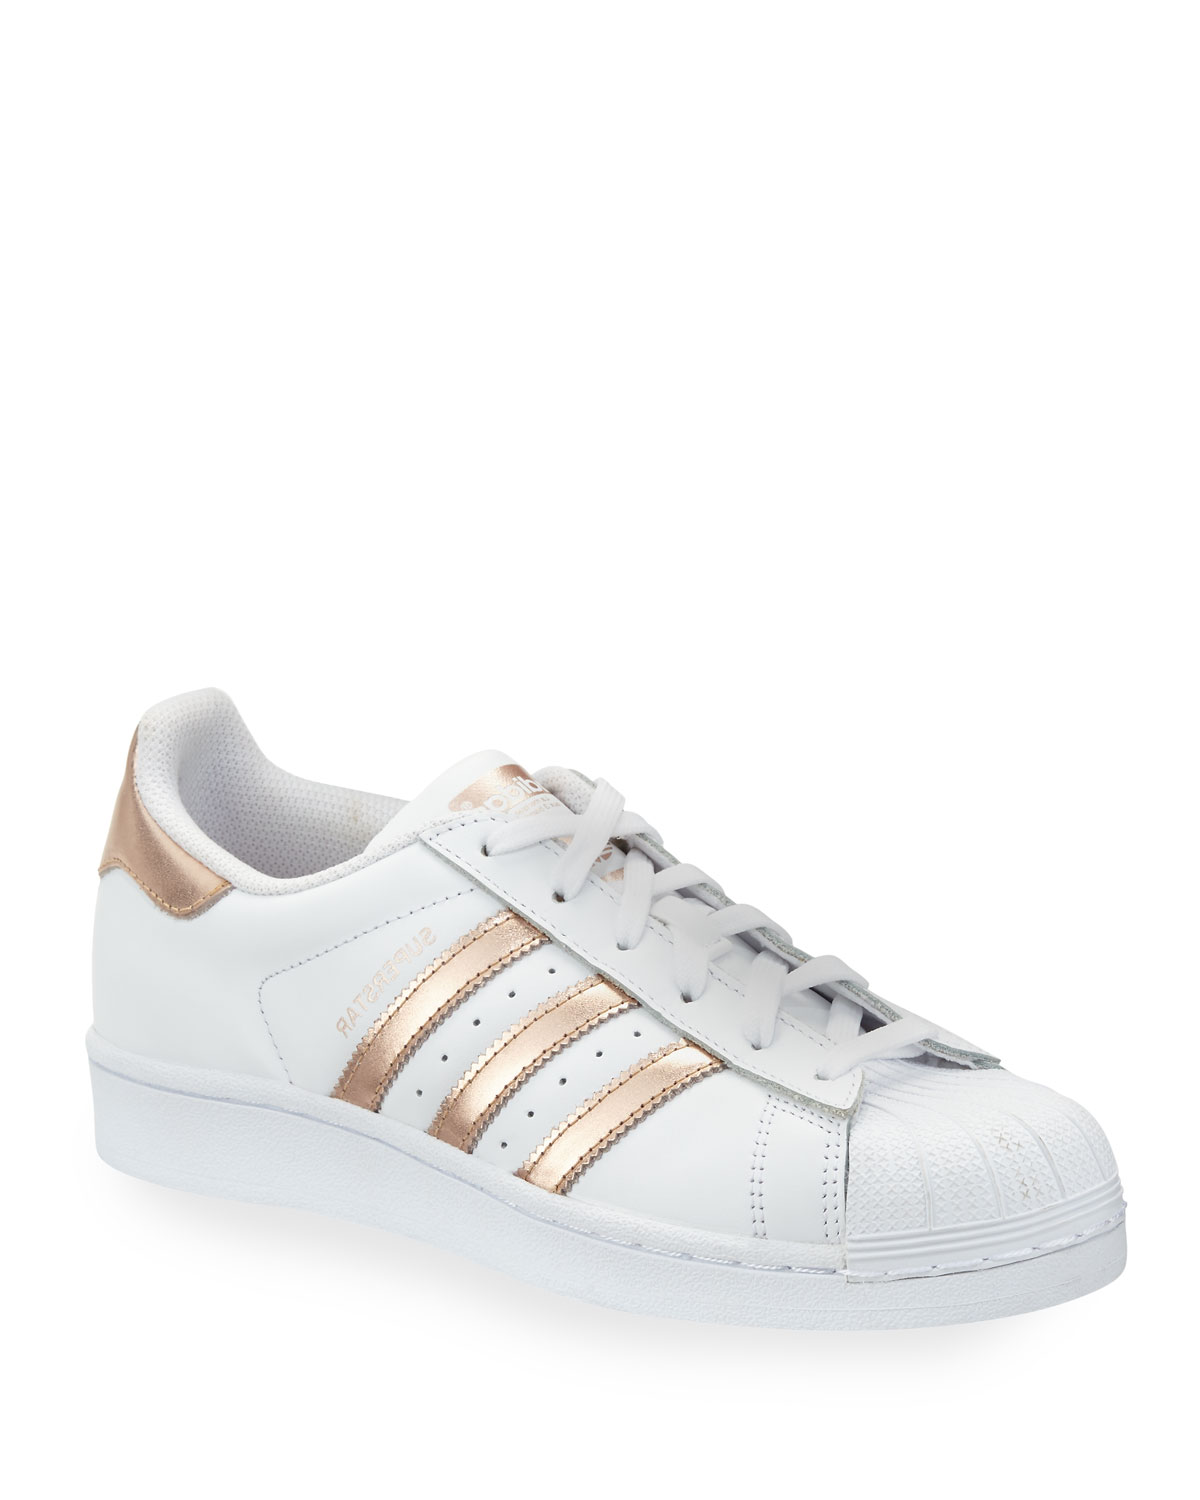 653699ea8a5a8 Adidas Superstar Original Fashion Sneakers